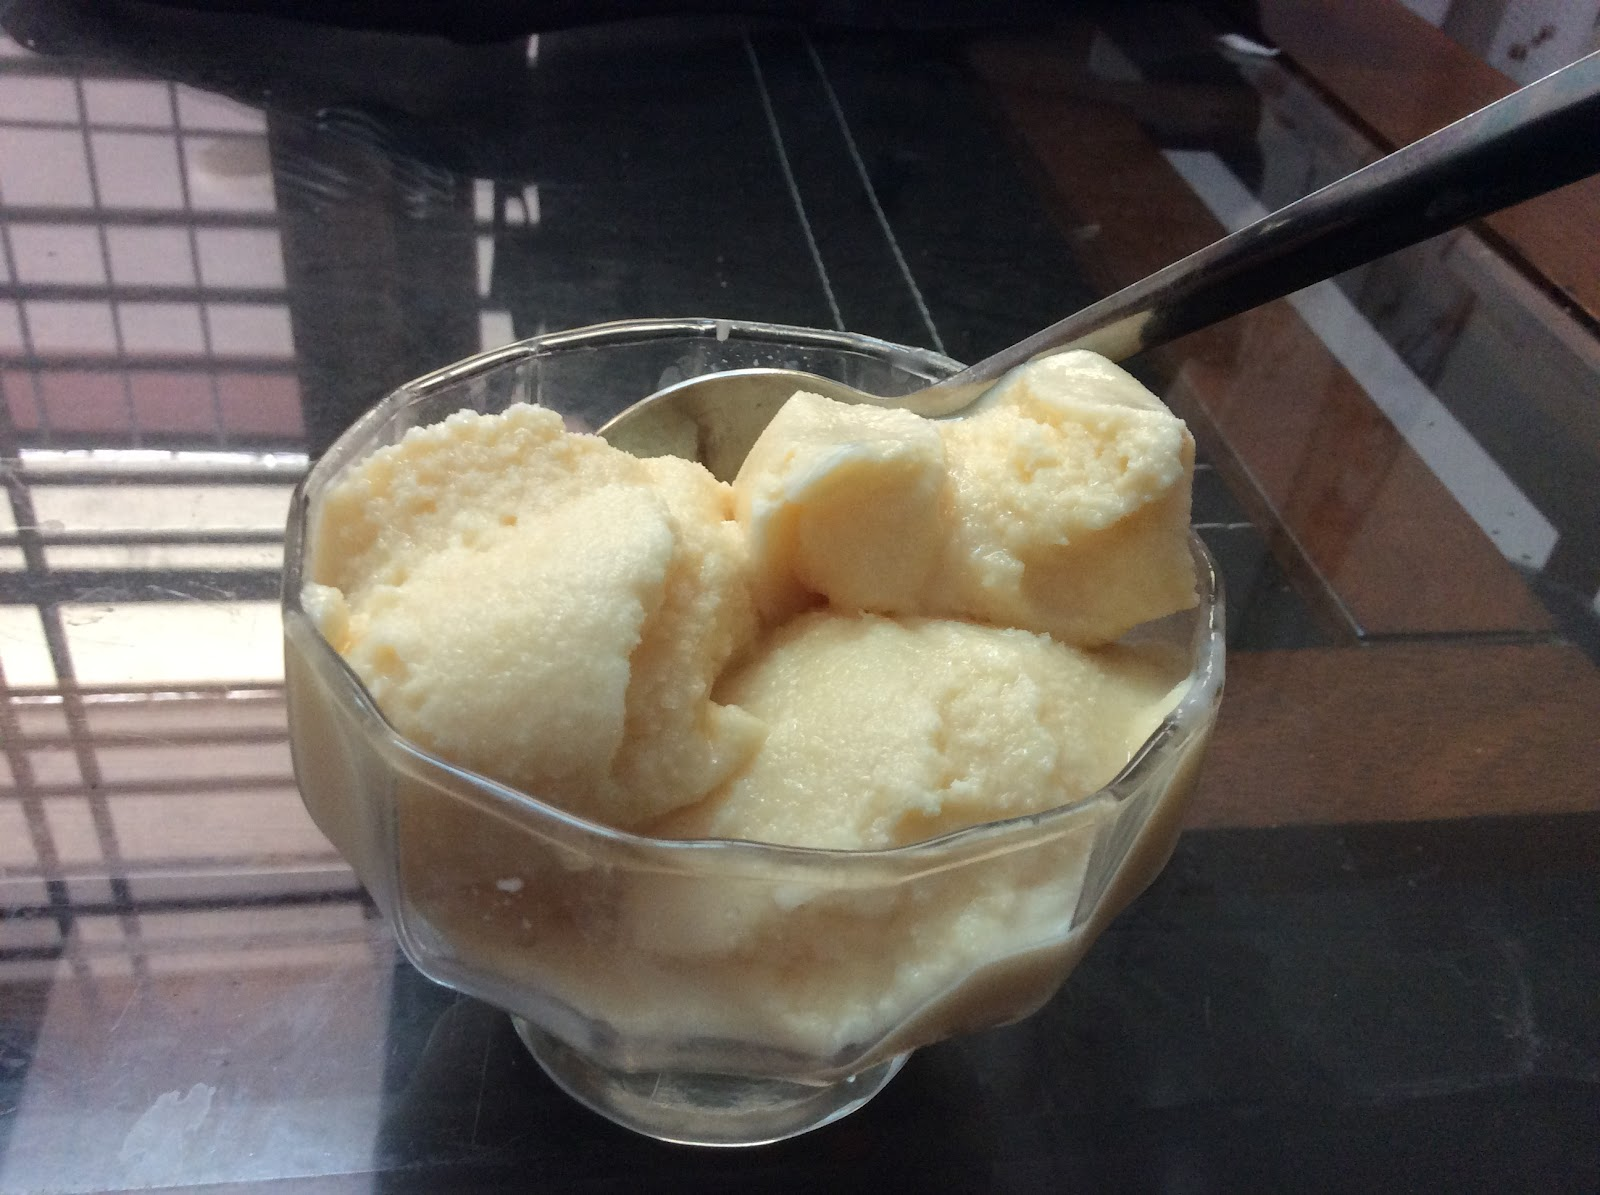 Suprabha ruchi adige musk melon kharbhooja ice cream musk melon kharbhooja in kannada is a fruit which has many health benefitsyou can eat it as it is or you can make juice or milkshake drink or mix with ccuart Choice Image